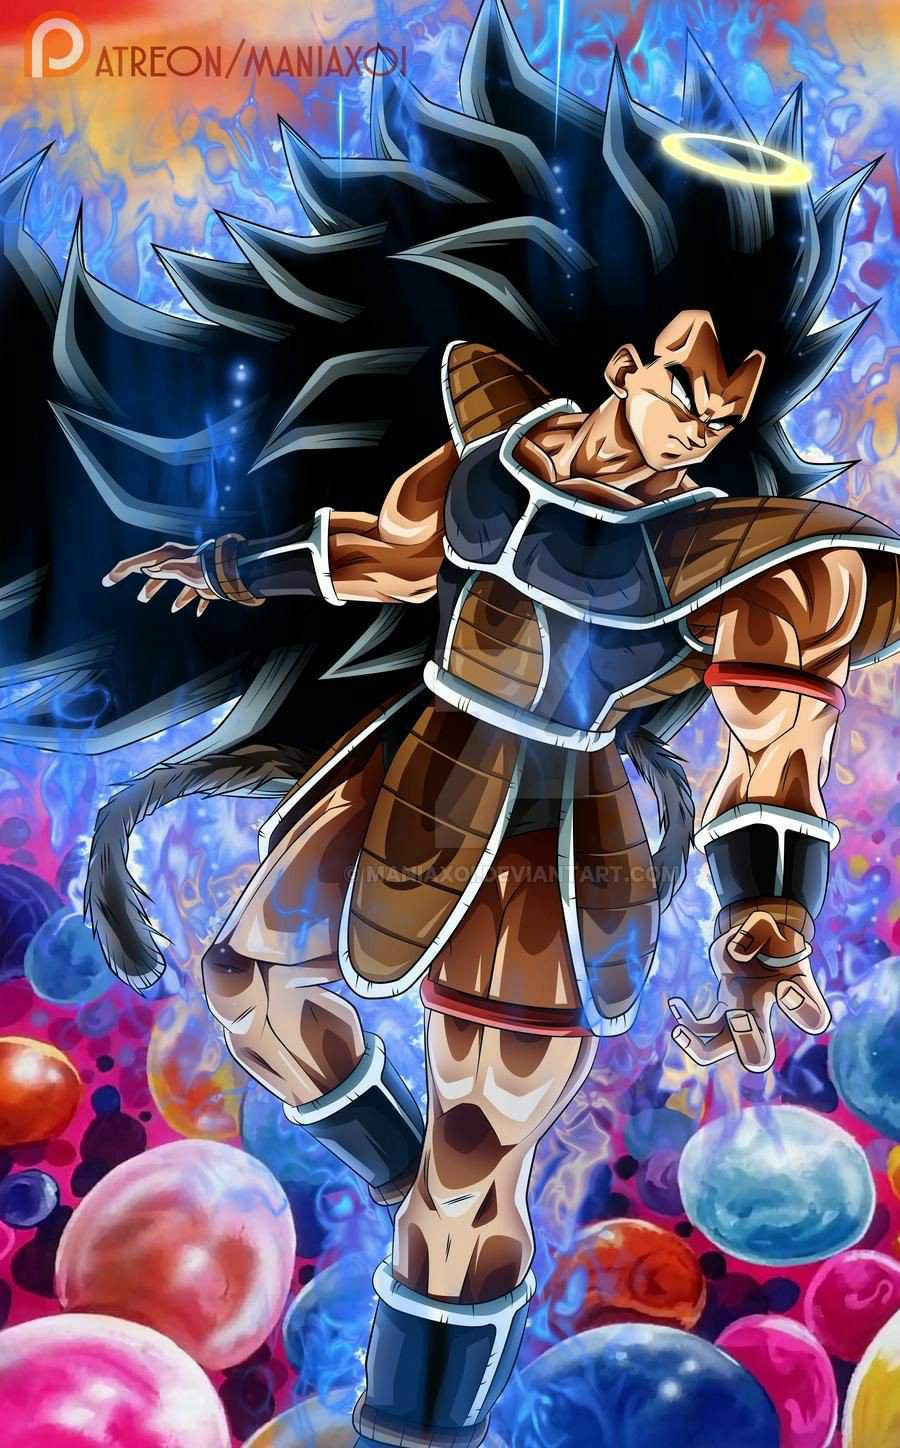 Masakox S What If Raditz Turned Good Dragon Ball Super Official